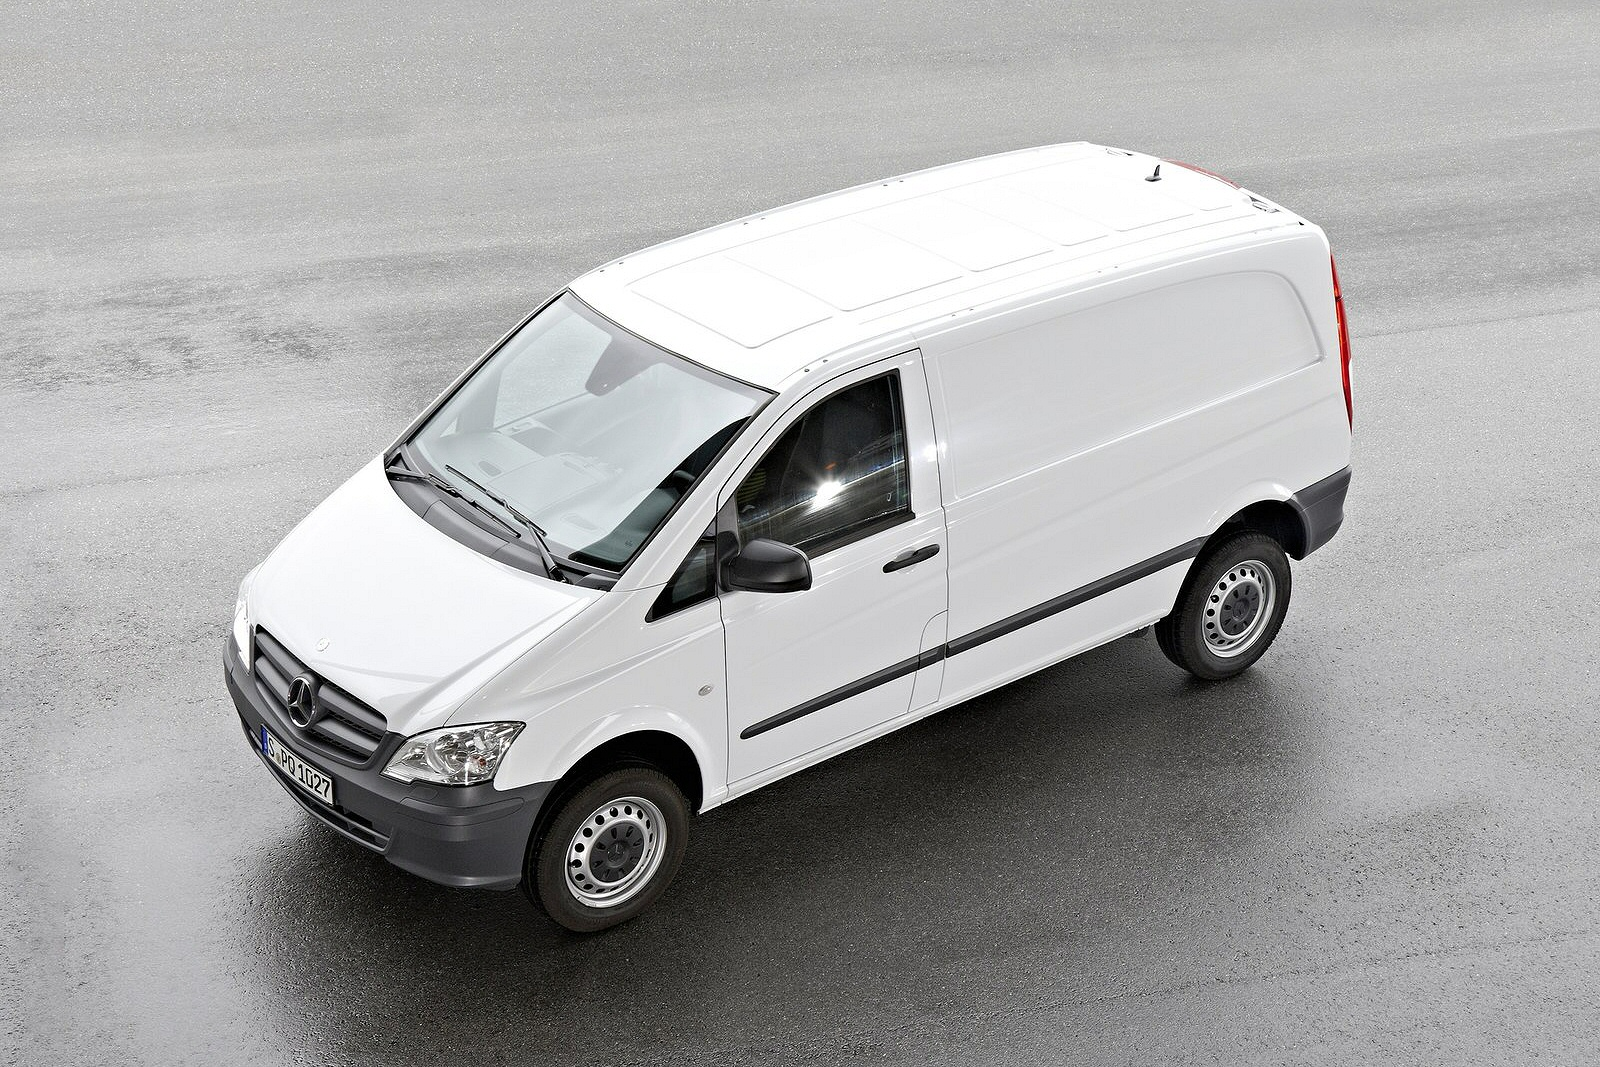 92599cd18c New Mercedes-Benz Vito Extra Long Diesel 111Cdi Crew Van for Sale ...